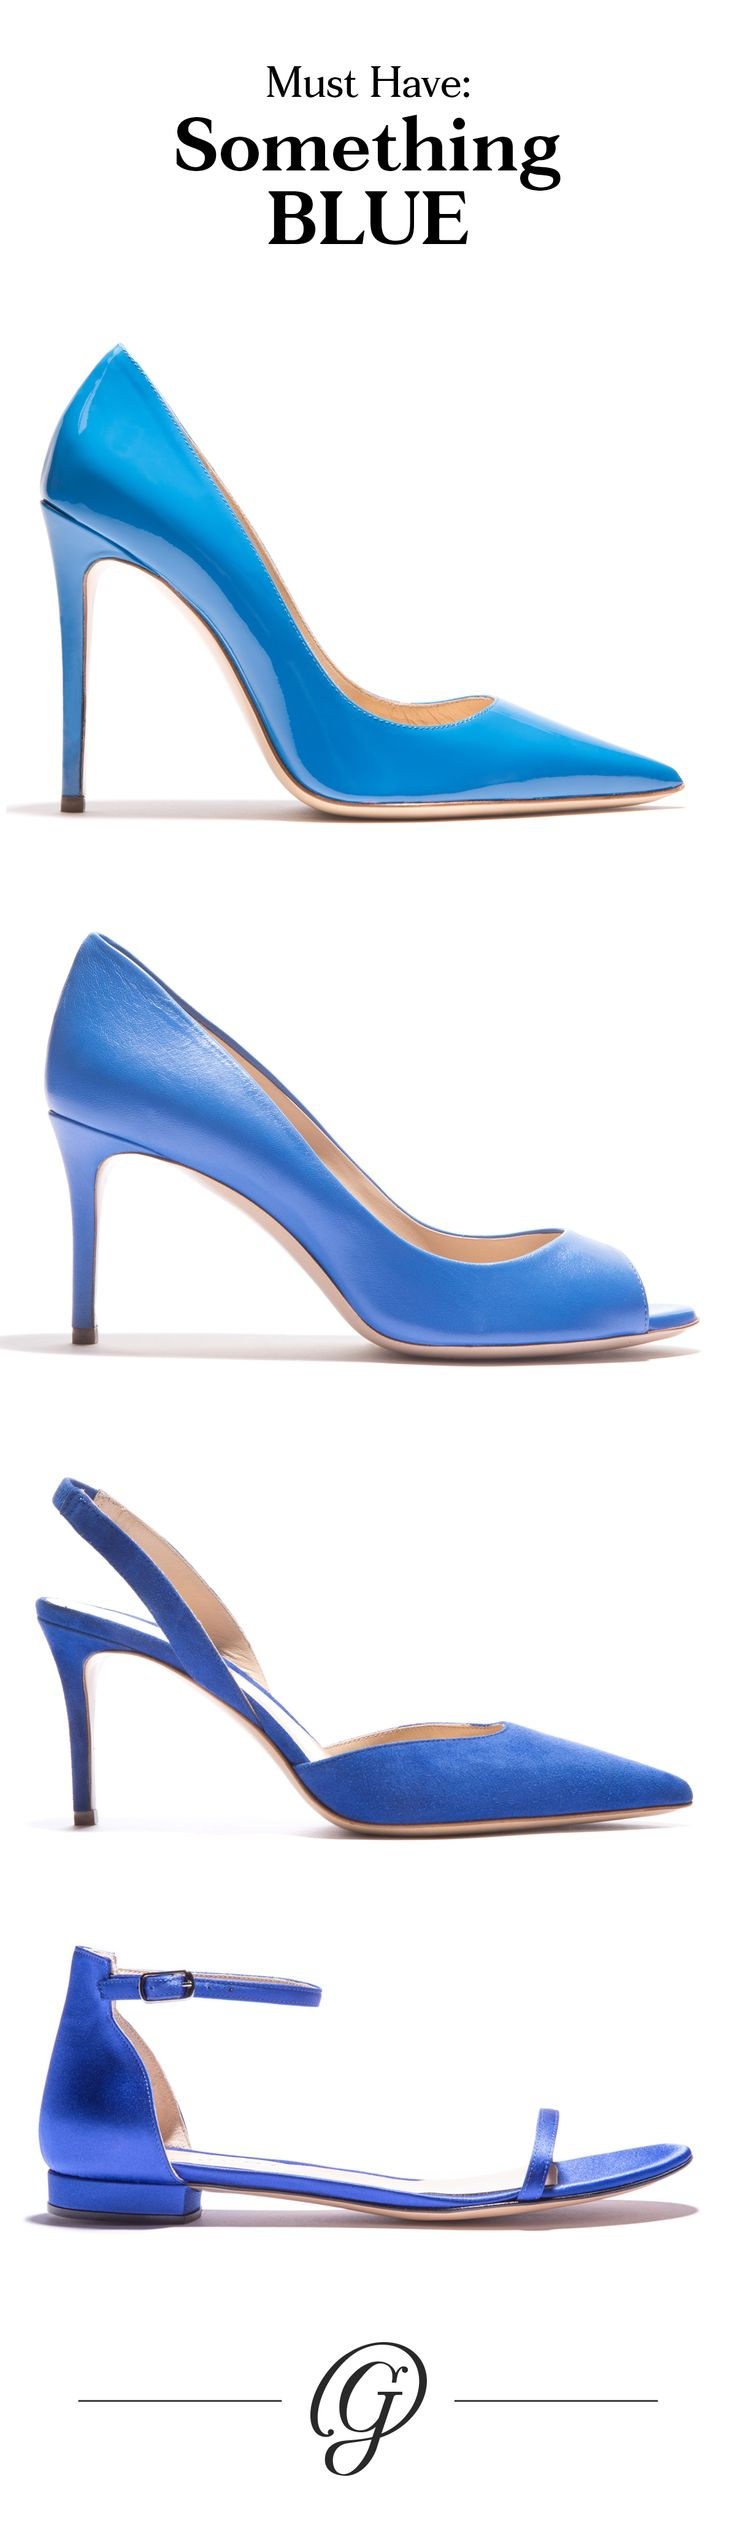 "I do. I do. I do. I do (want limited-edition Italian shoes for the big day). These handcrafted beauties solved the ""Something Blue"" for summer weddings and lend all our whites a colorful touch long after the big day."